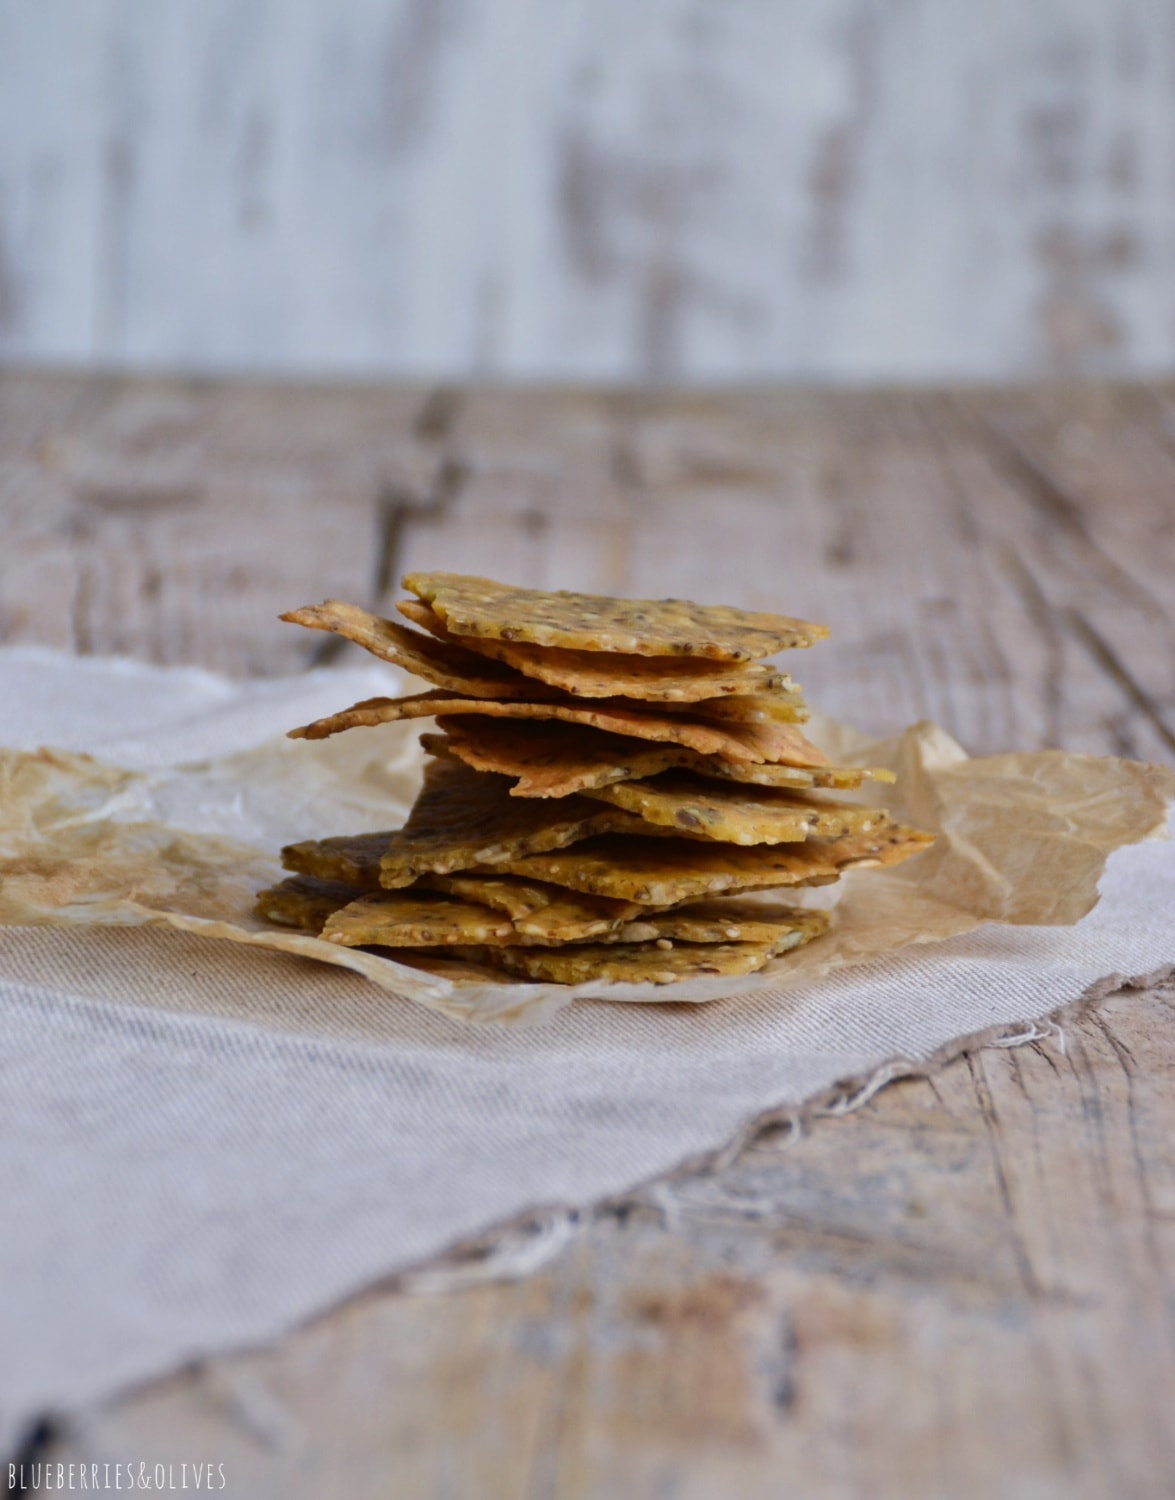 PILED CORN CRACKERS, WITH AN OLD WOOD BACKGROUND